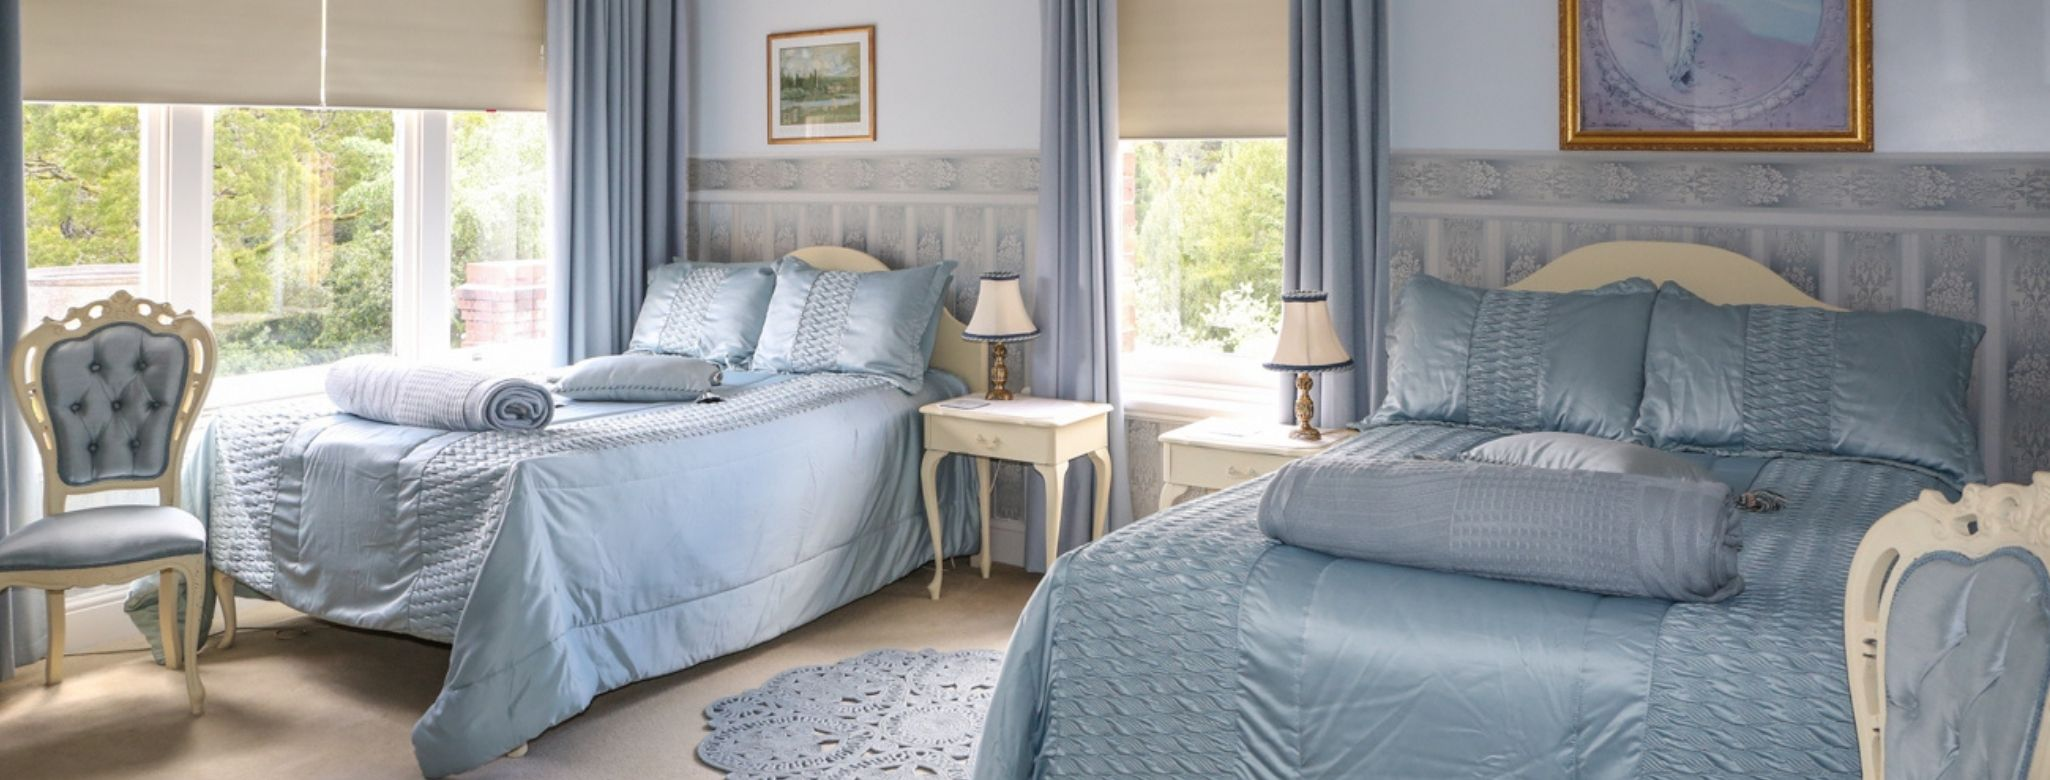 Lyell Suite At Penghana Bed And Breakfast In Queenstown Offers Twin Queen Bed Accommodation